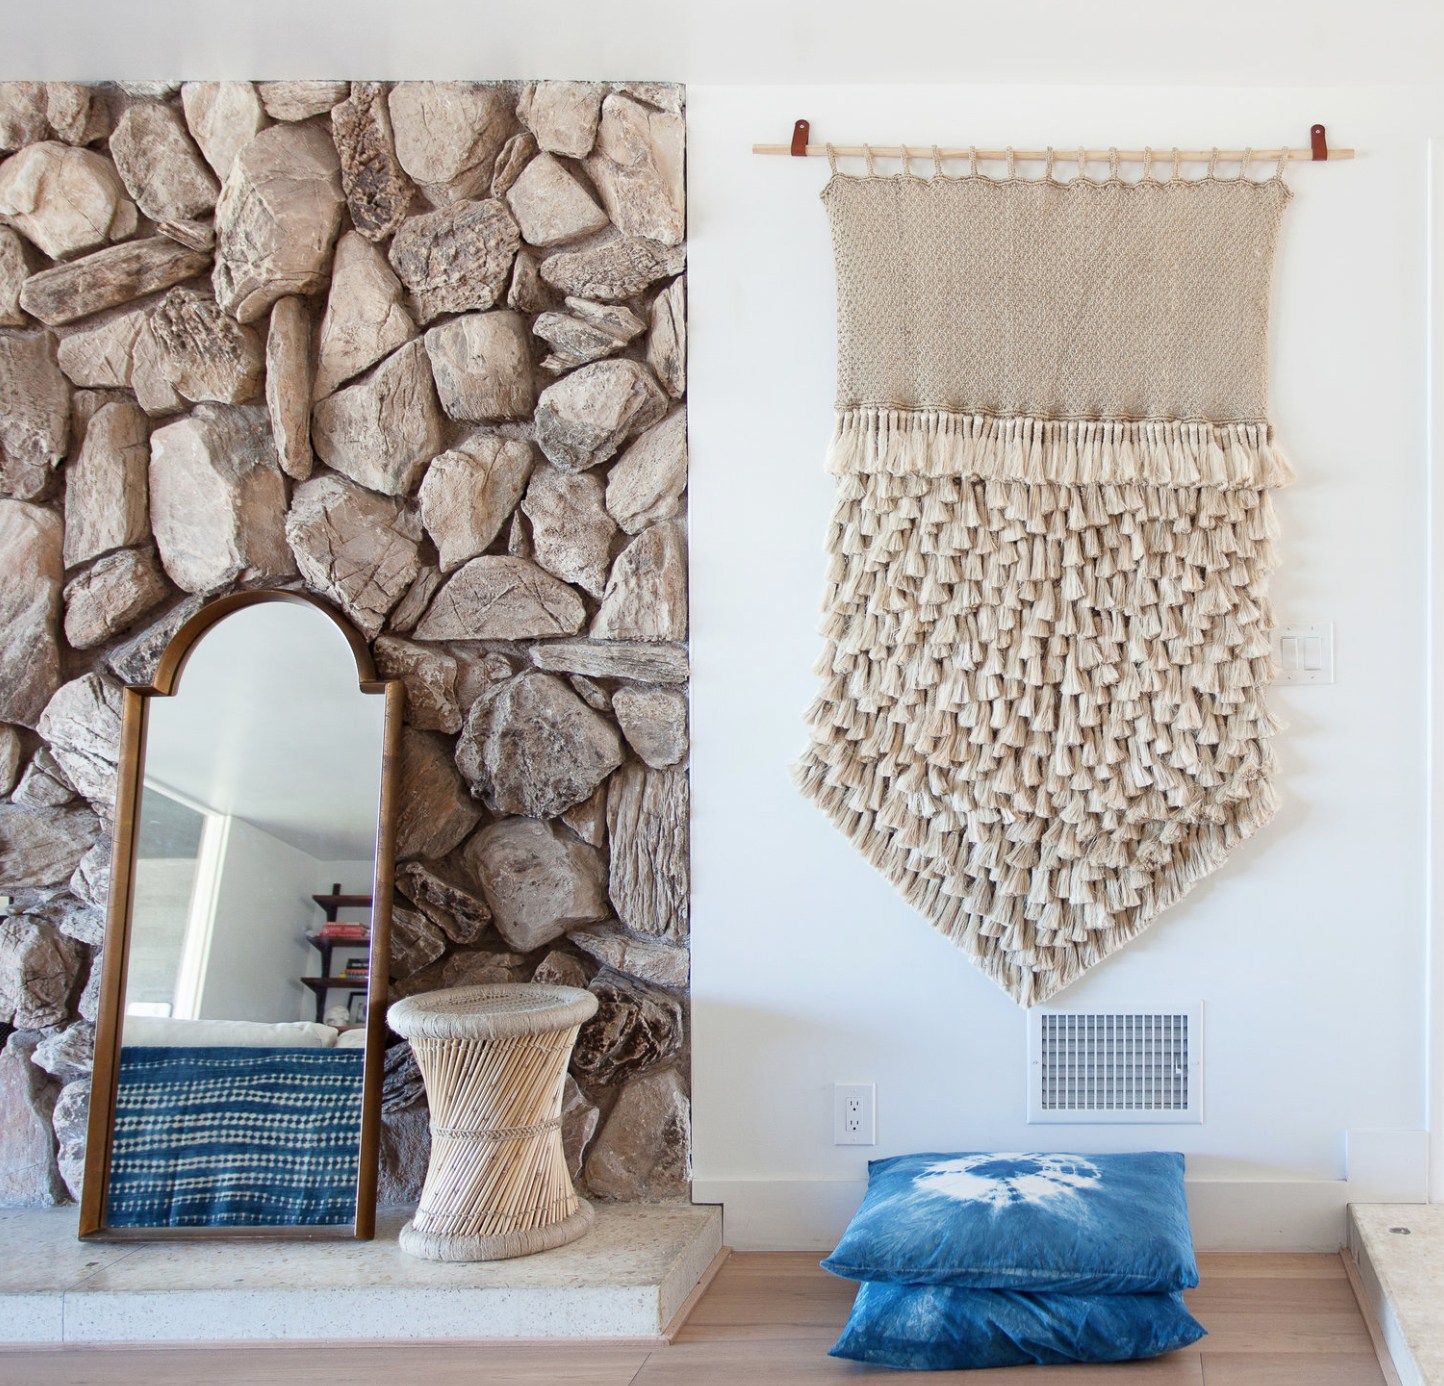 Natalie Myers with Veneer Designs  does a woven wall hanging like a champ in her Ladera Heights remodel.Love this neutral texture next to that mid century stone fireplace face, accented with the pop of indigo from the floor cushions. Perfect Bohemian harmony.